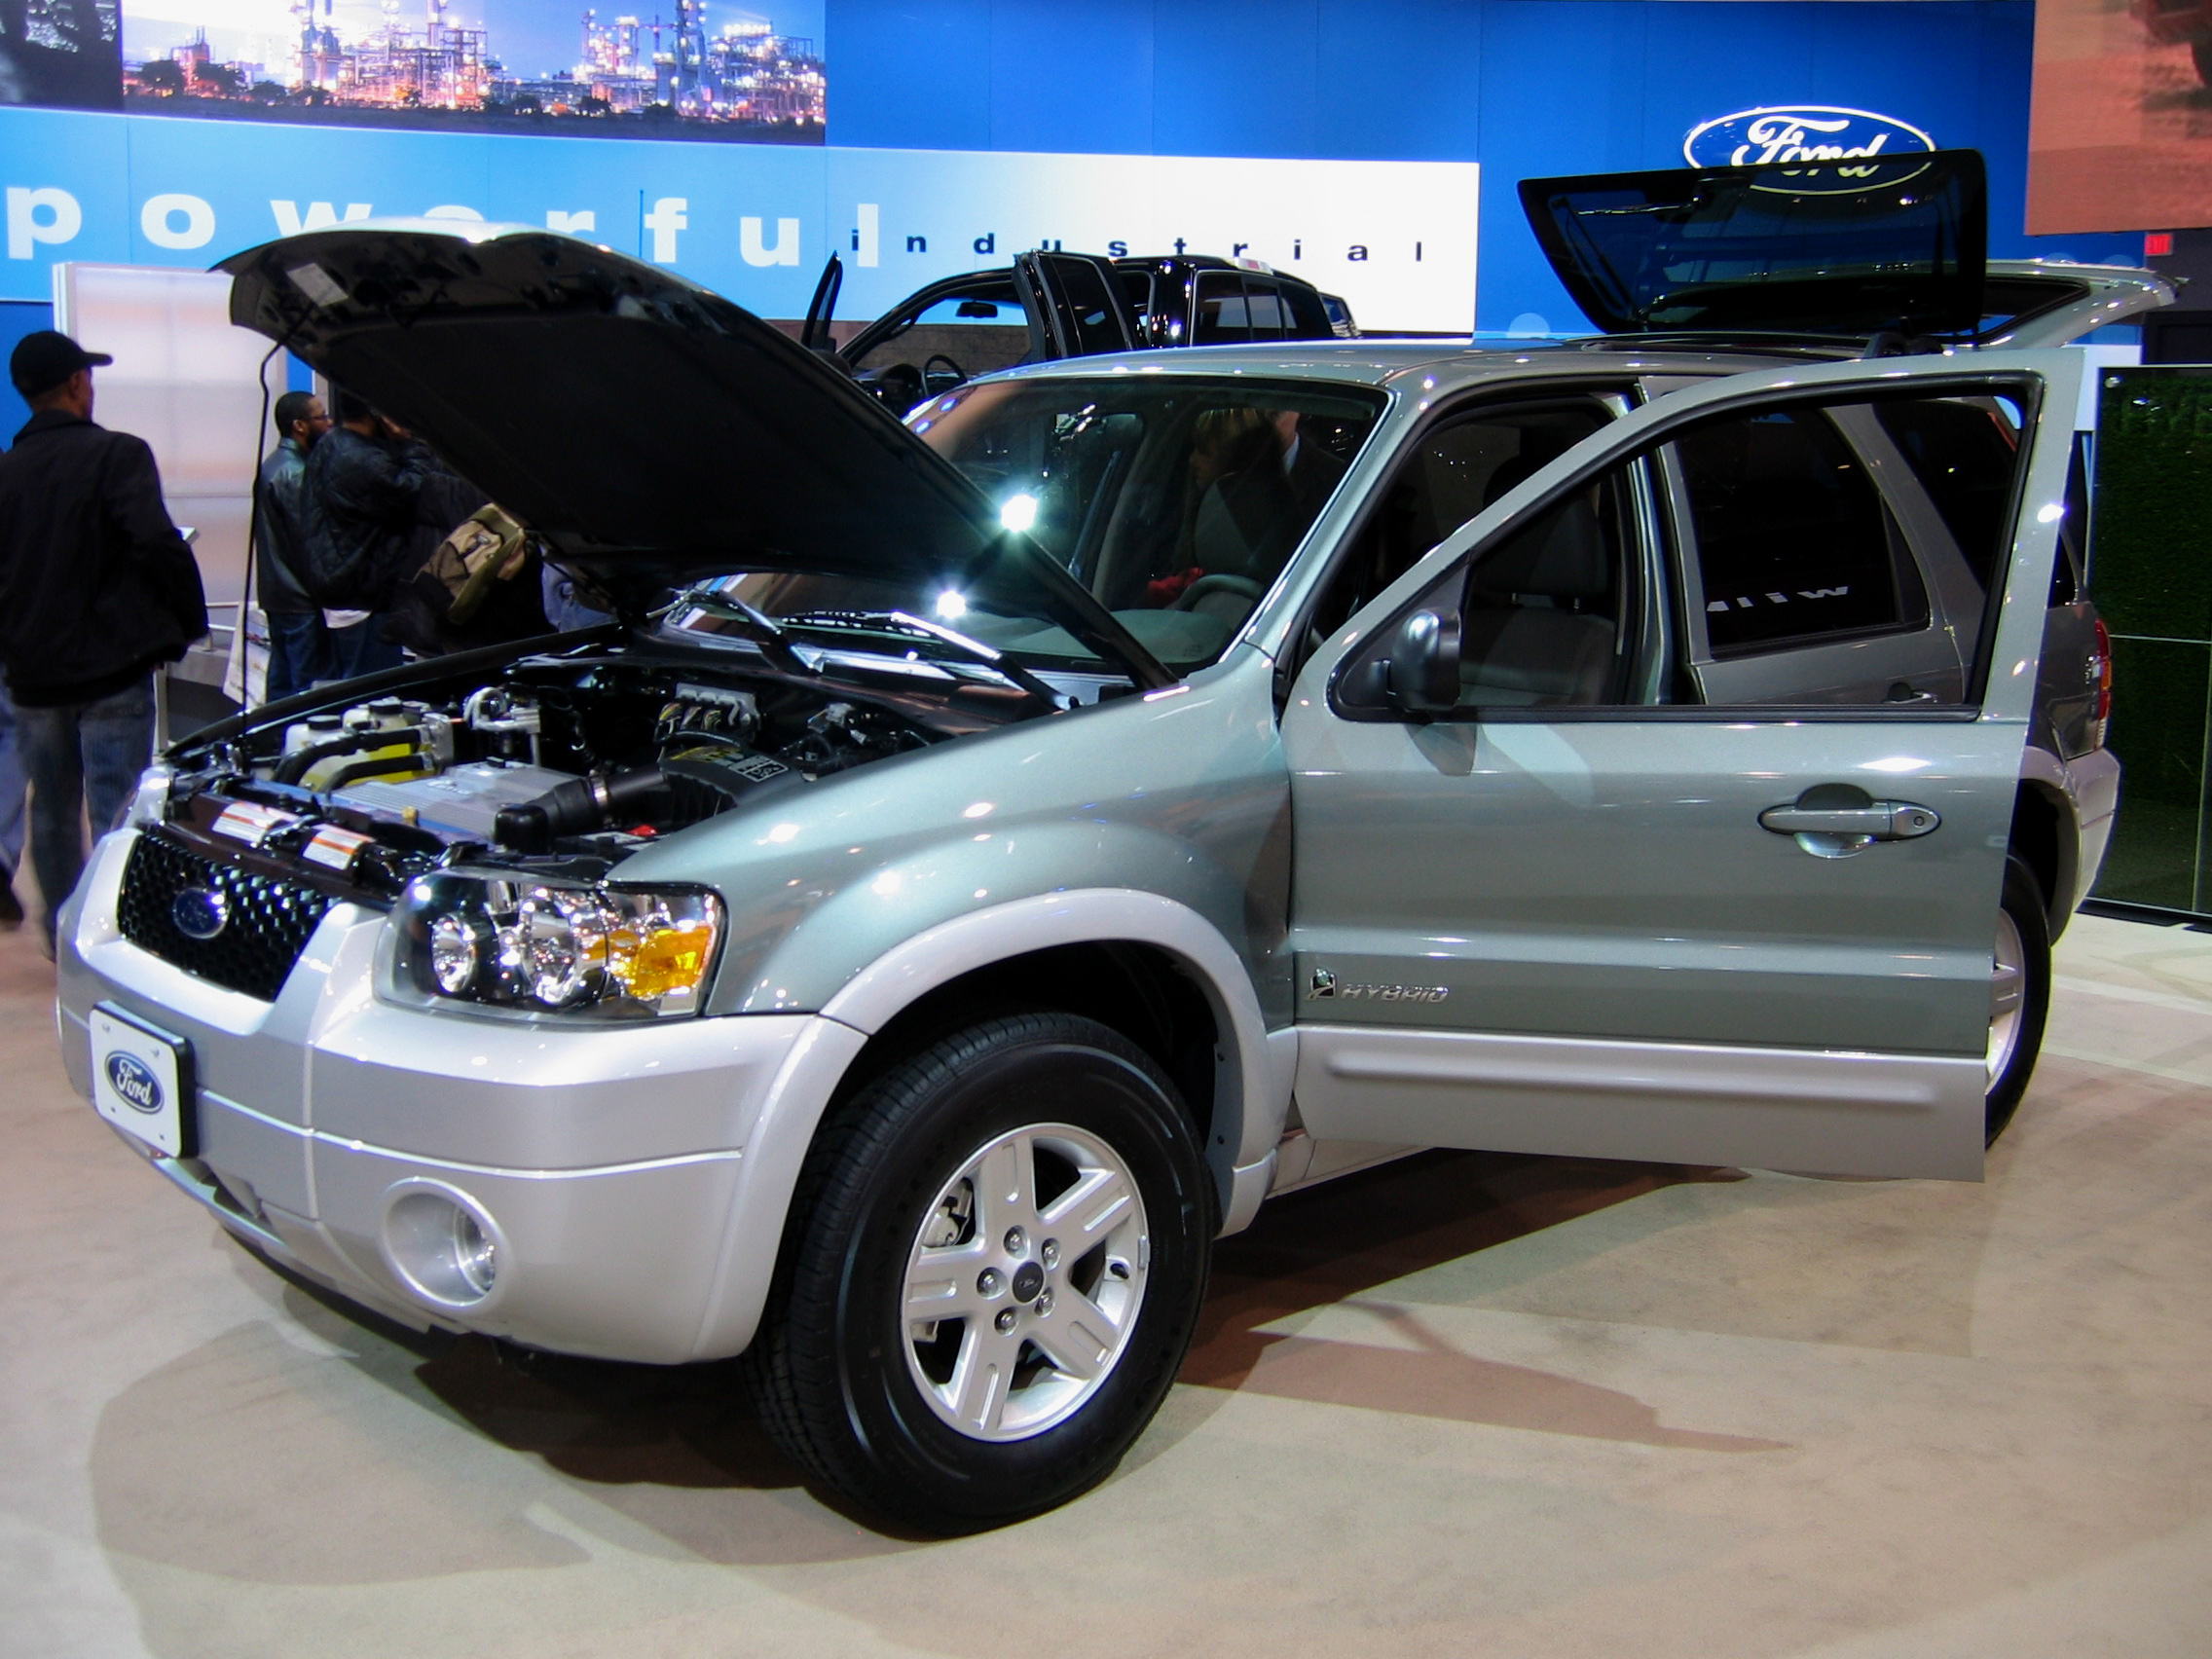 Ford escape hybrid HD Free Picture Download Image Wallpaper